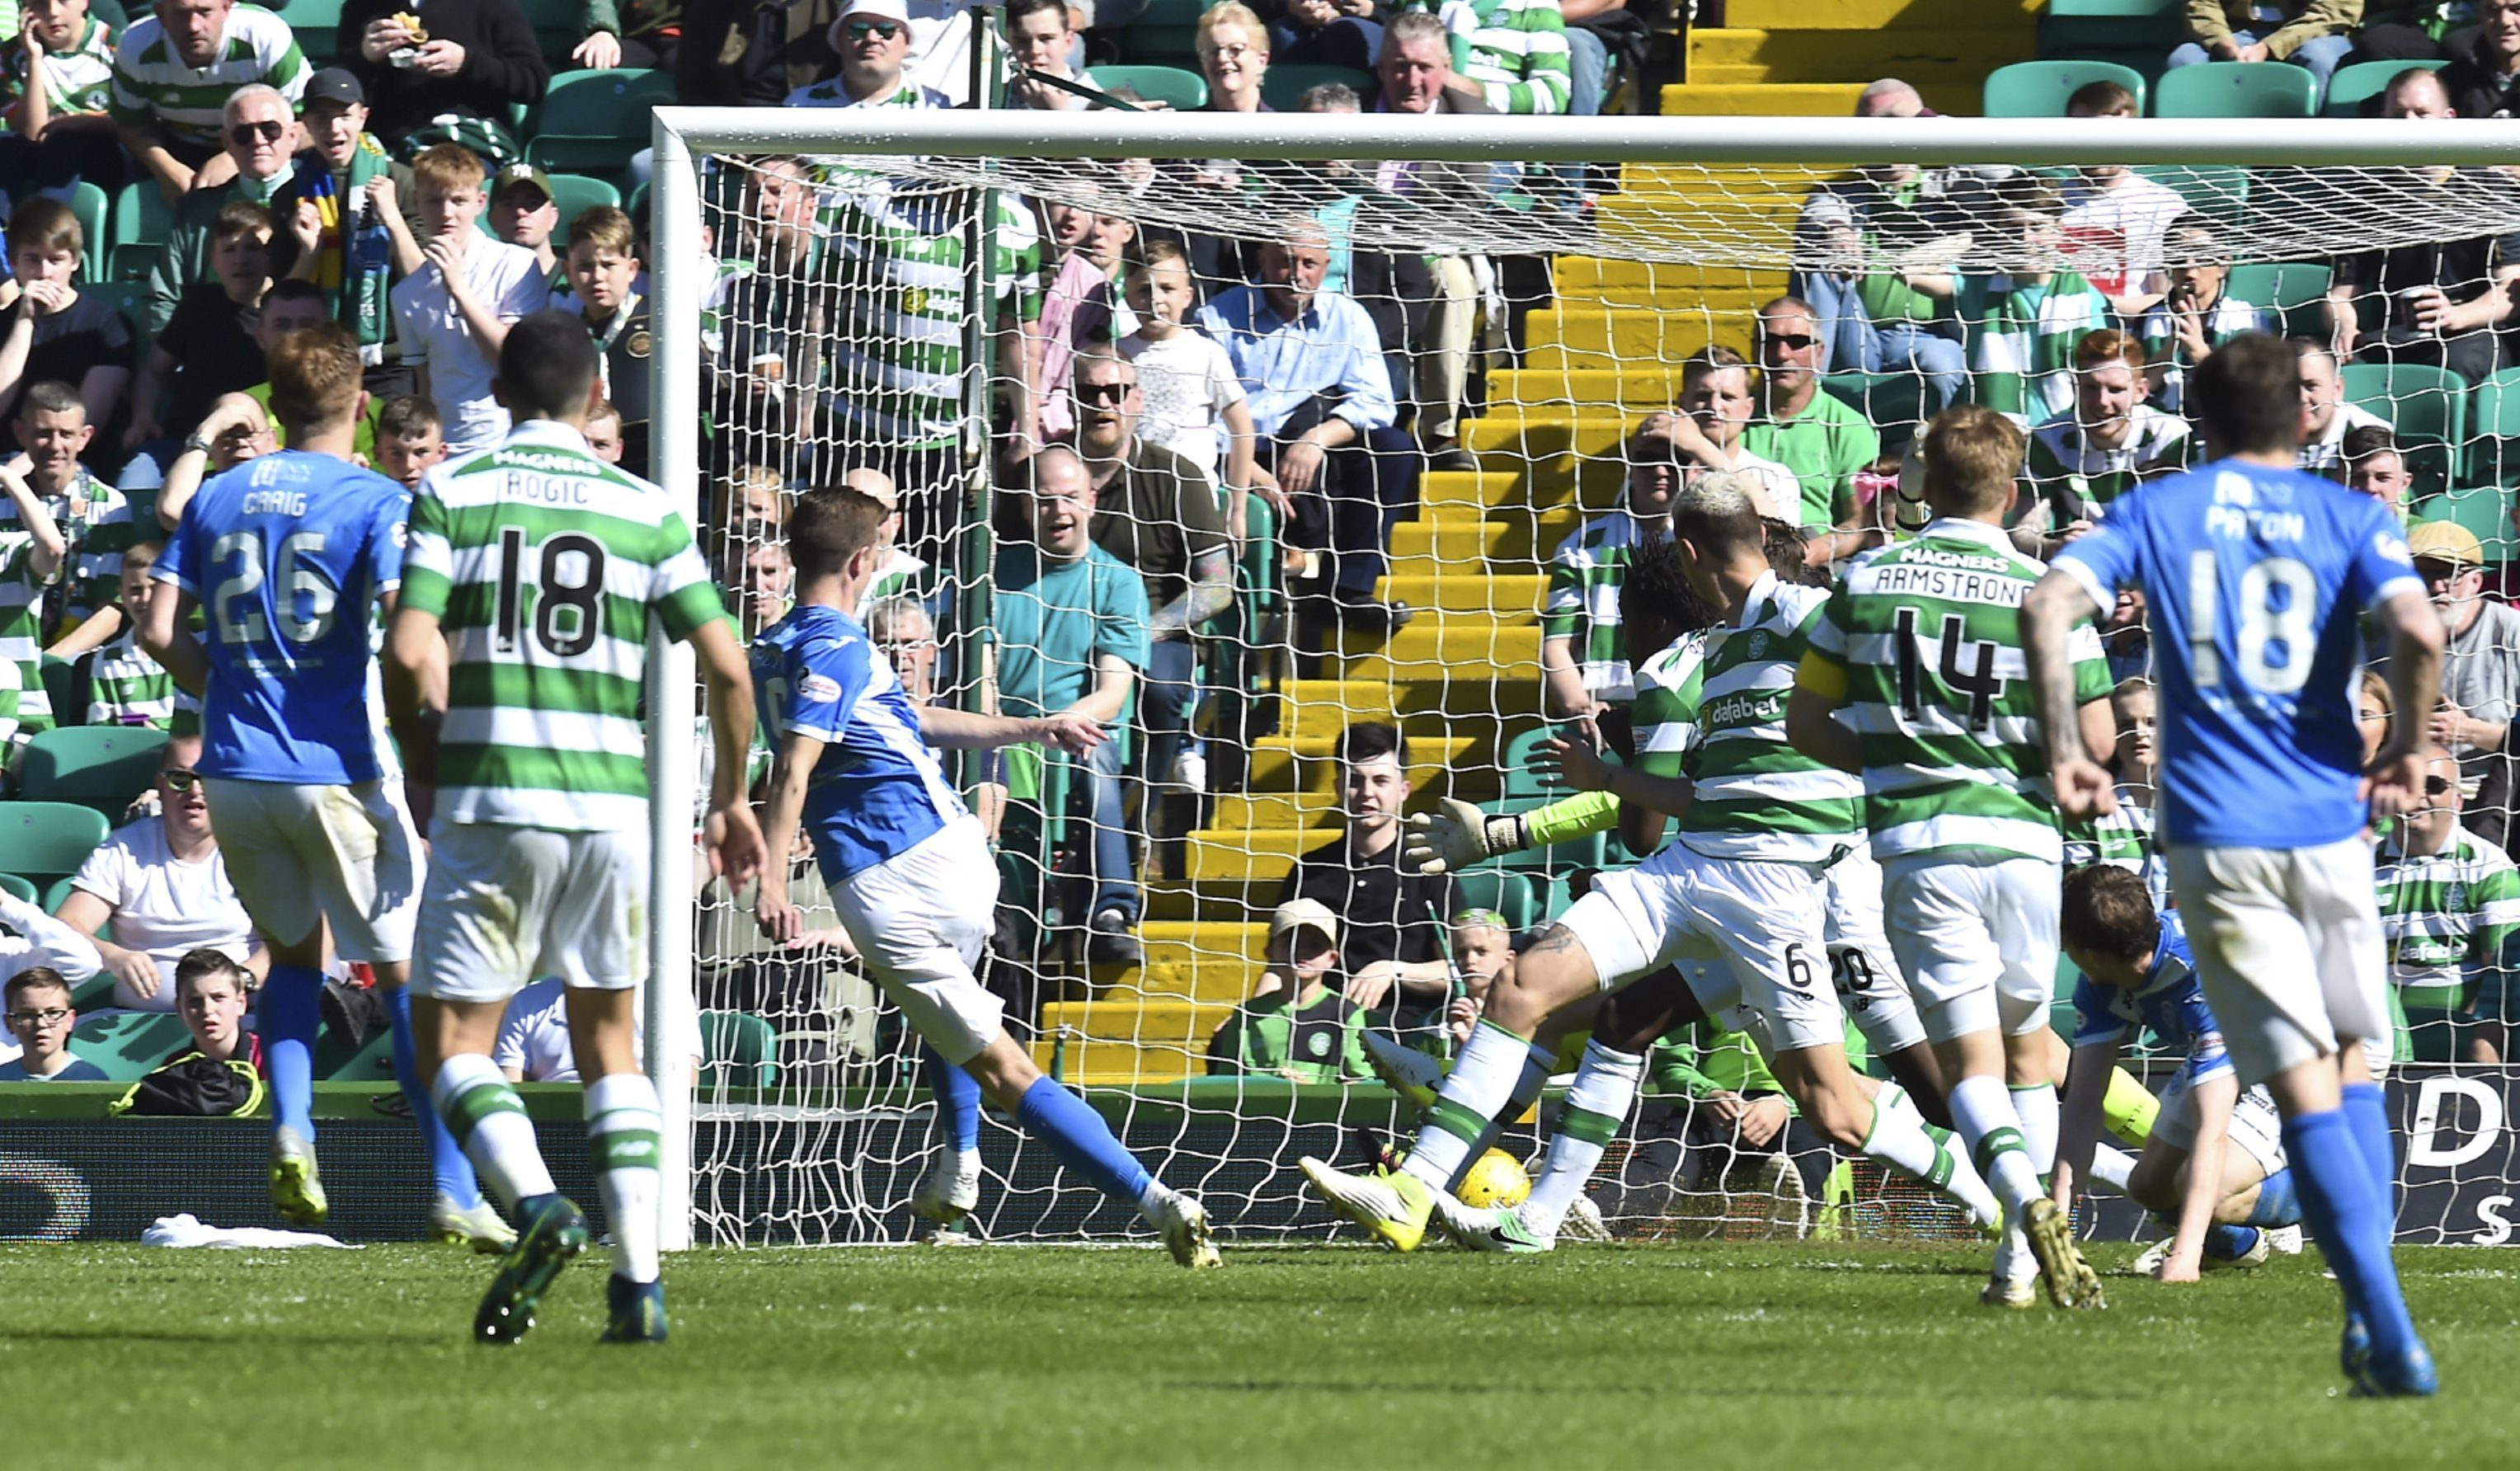 Steven MacLean (third from left) scores for Saints.